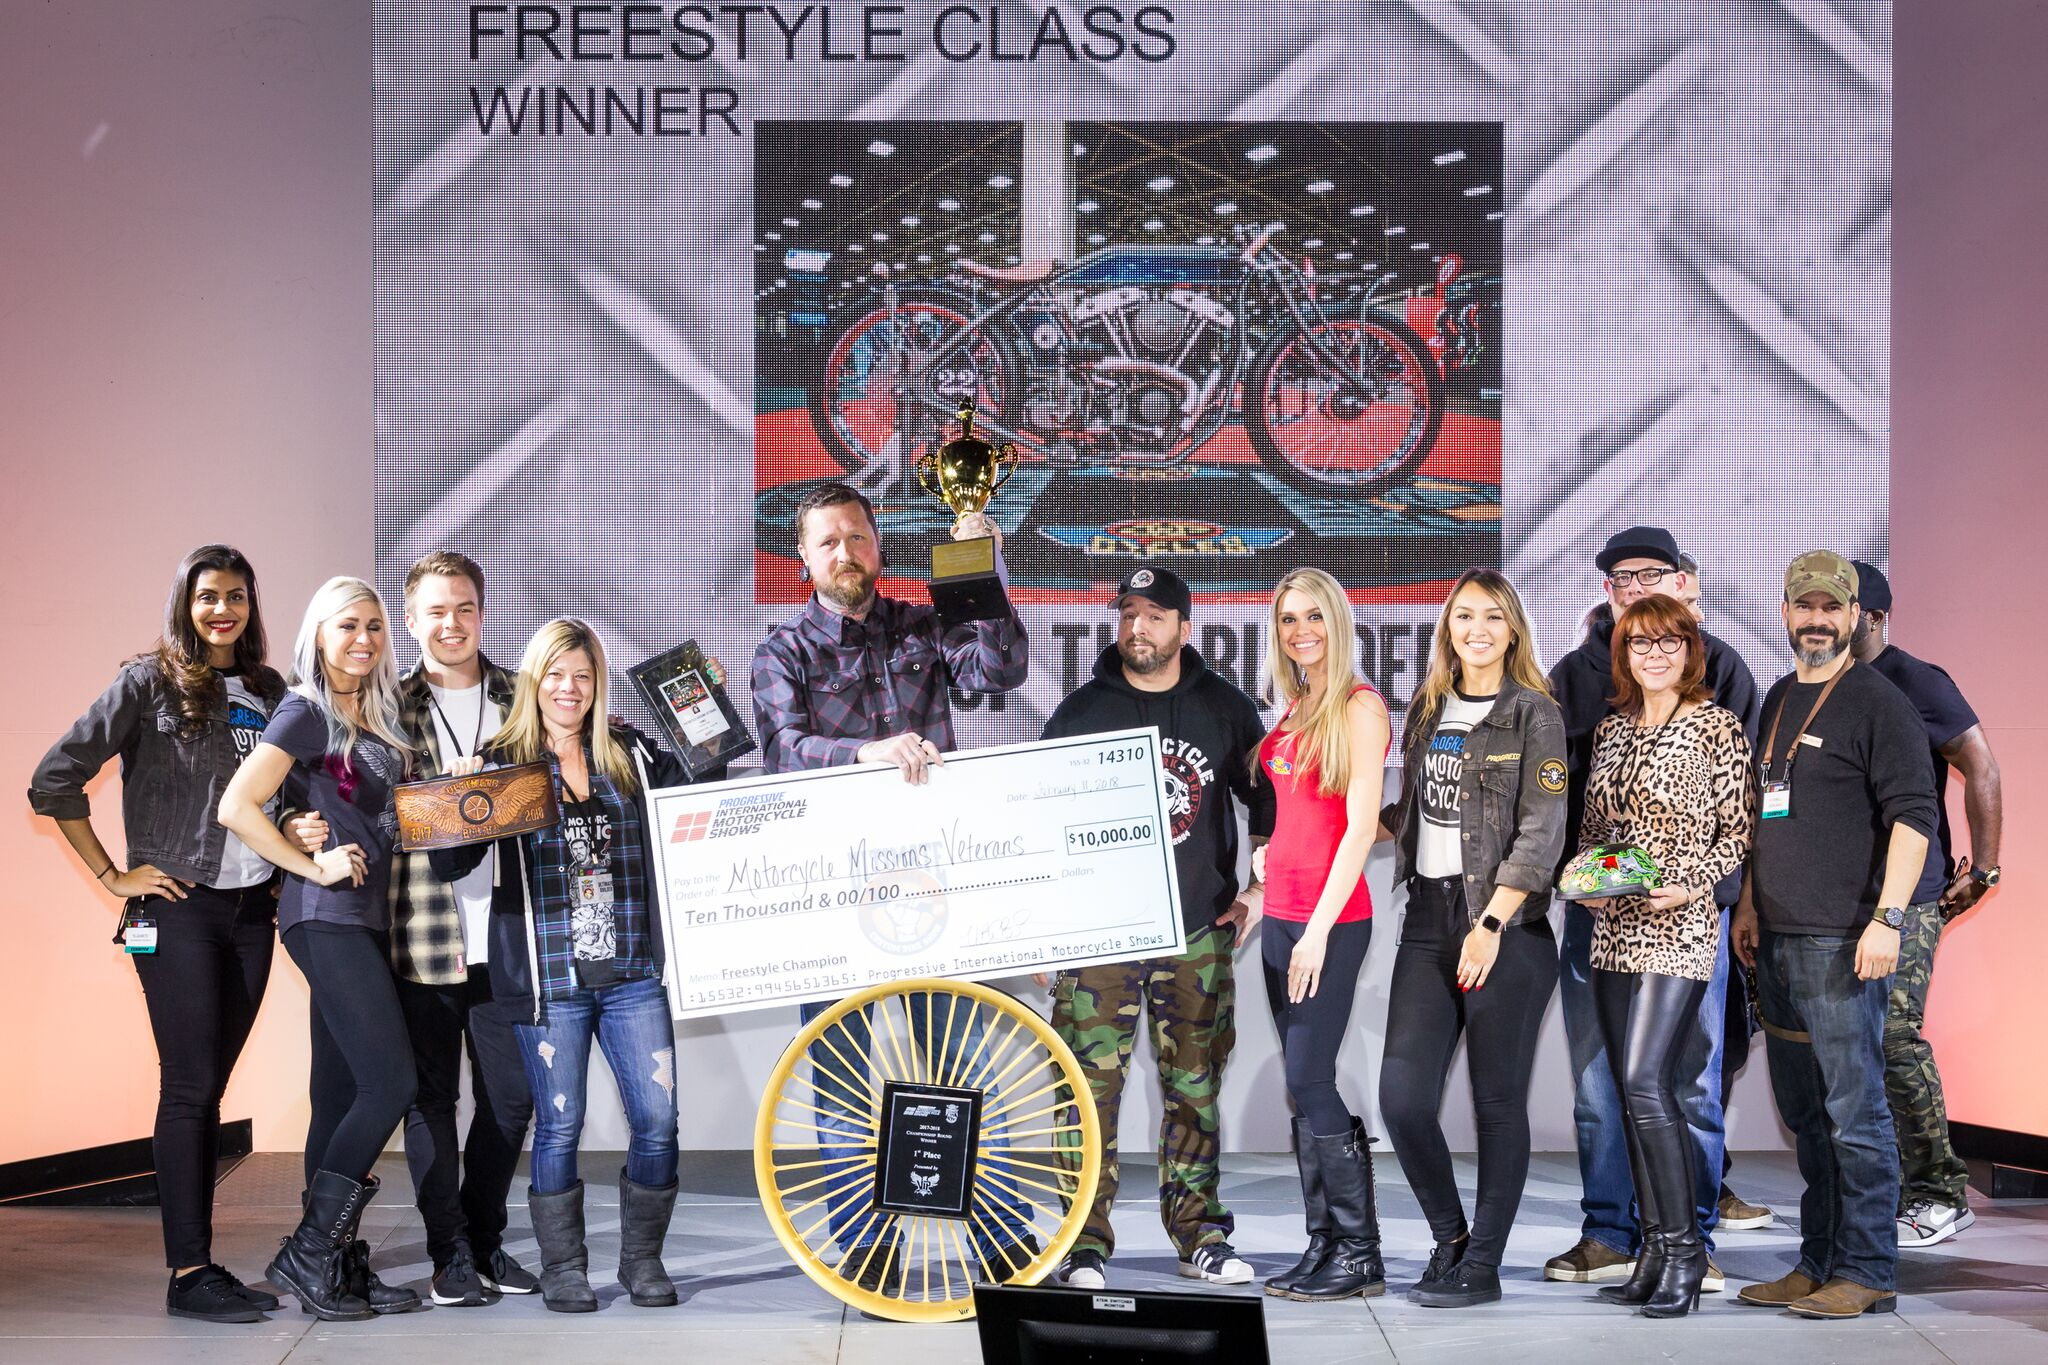 J&P Cycles IMS Freestyle Winner - Motorcyle Missions Veterans - 2_preview